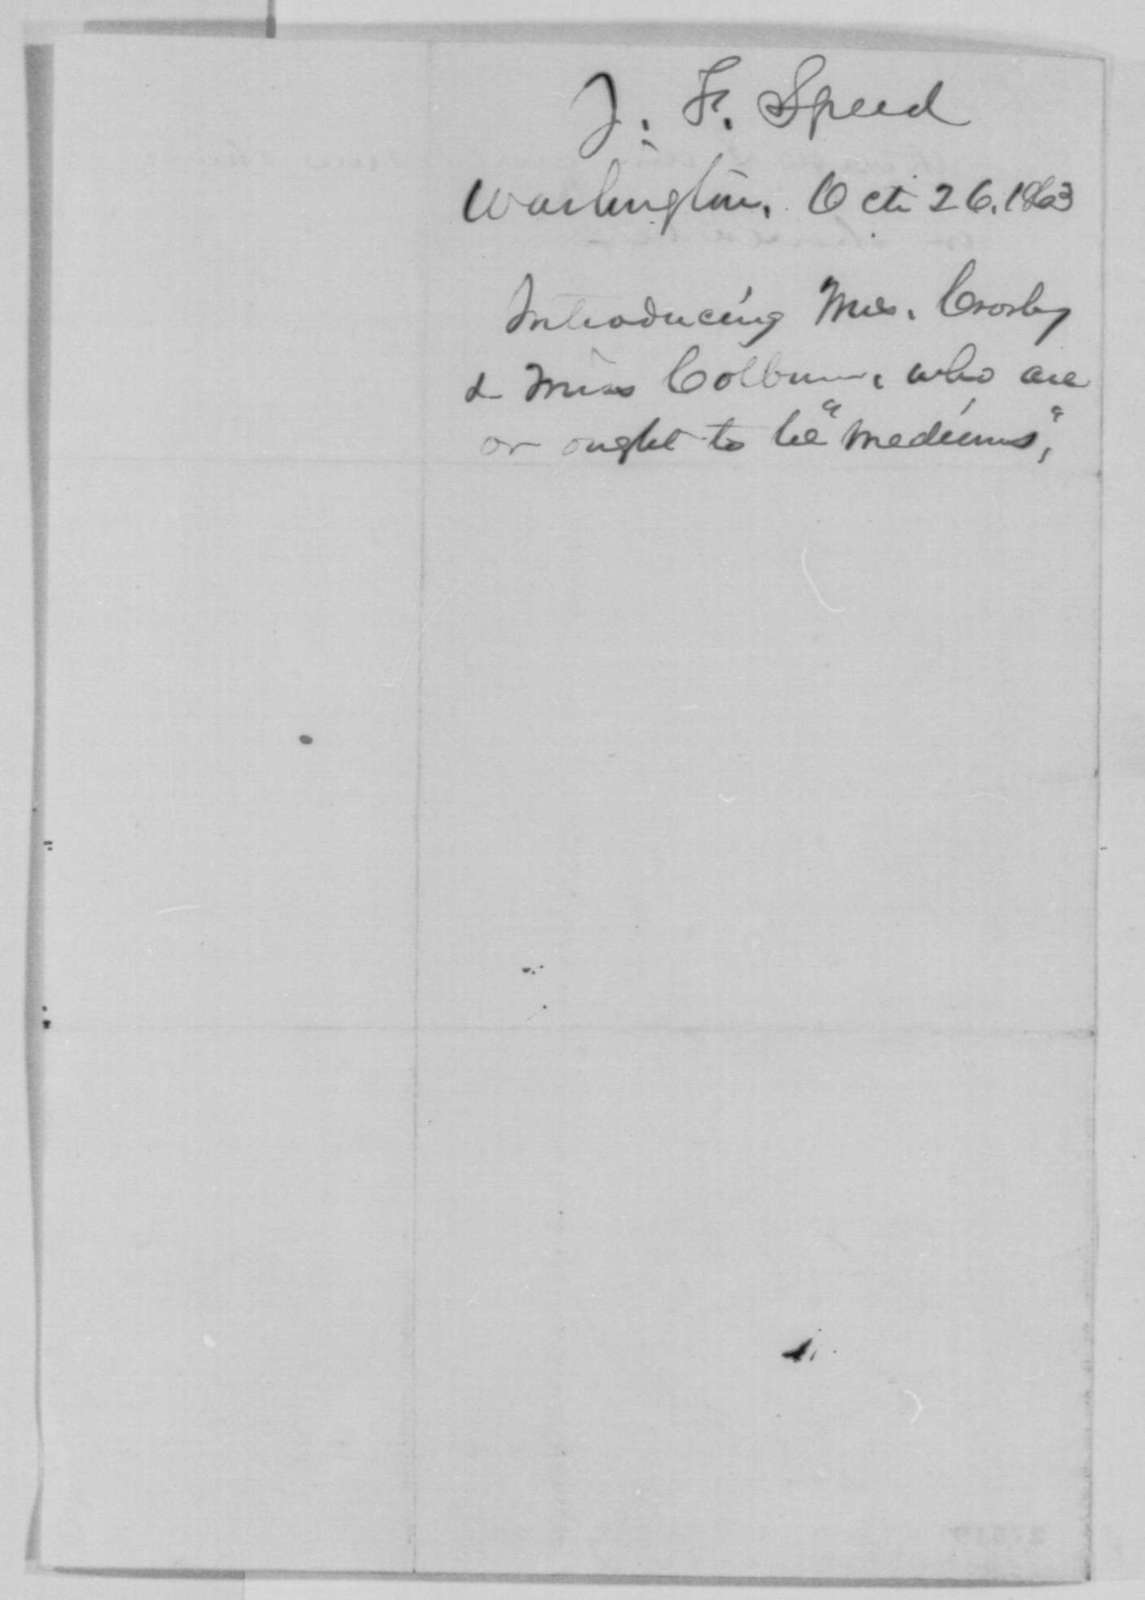 Joshua F. Speed to Abraham Lincoln, Monday, October 26, 1863  (Introduces two mediums)